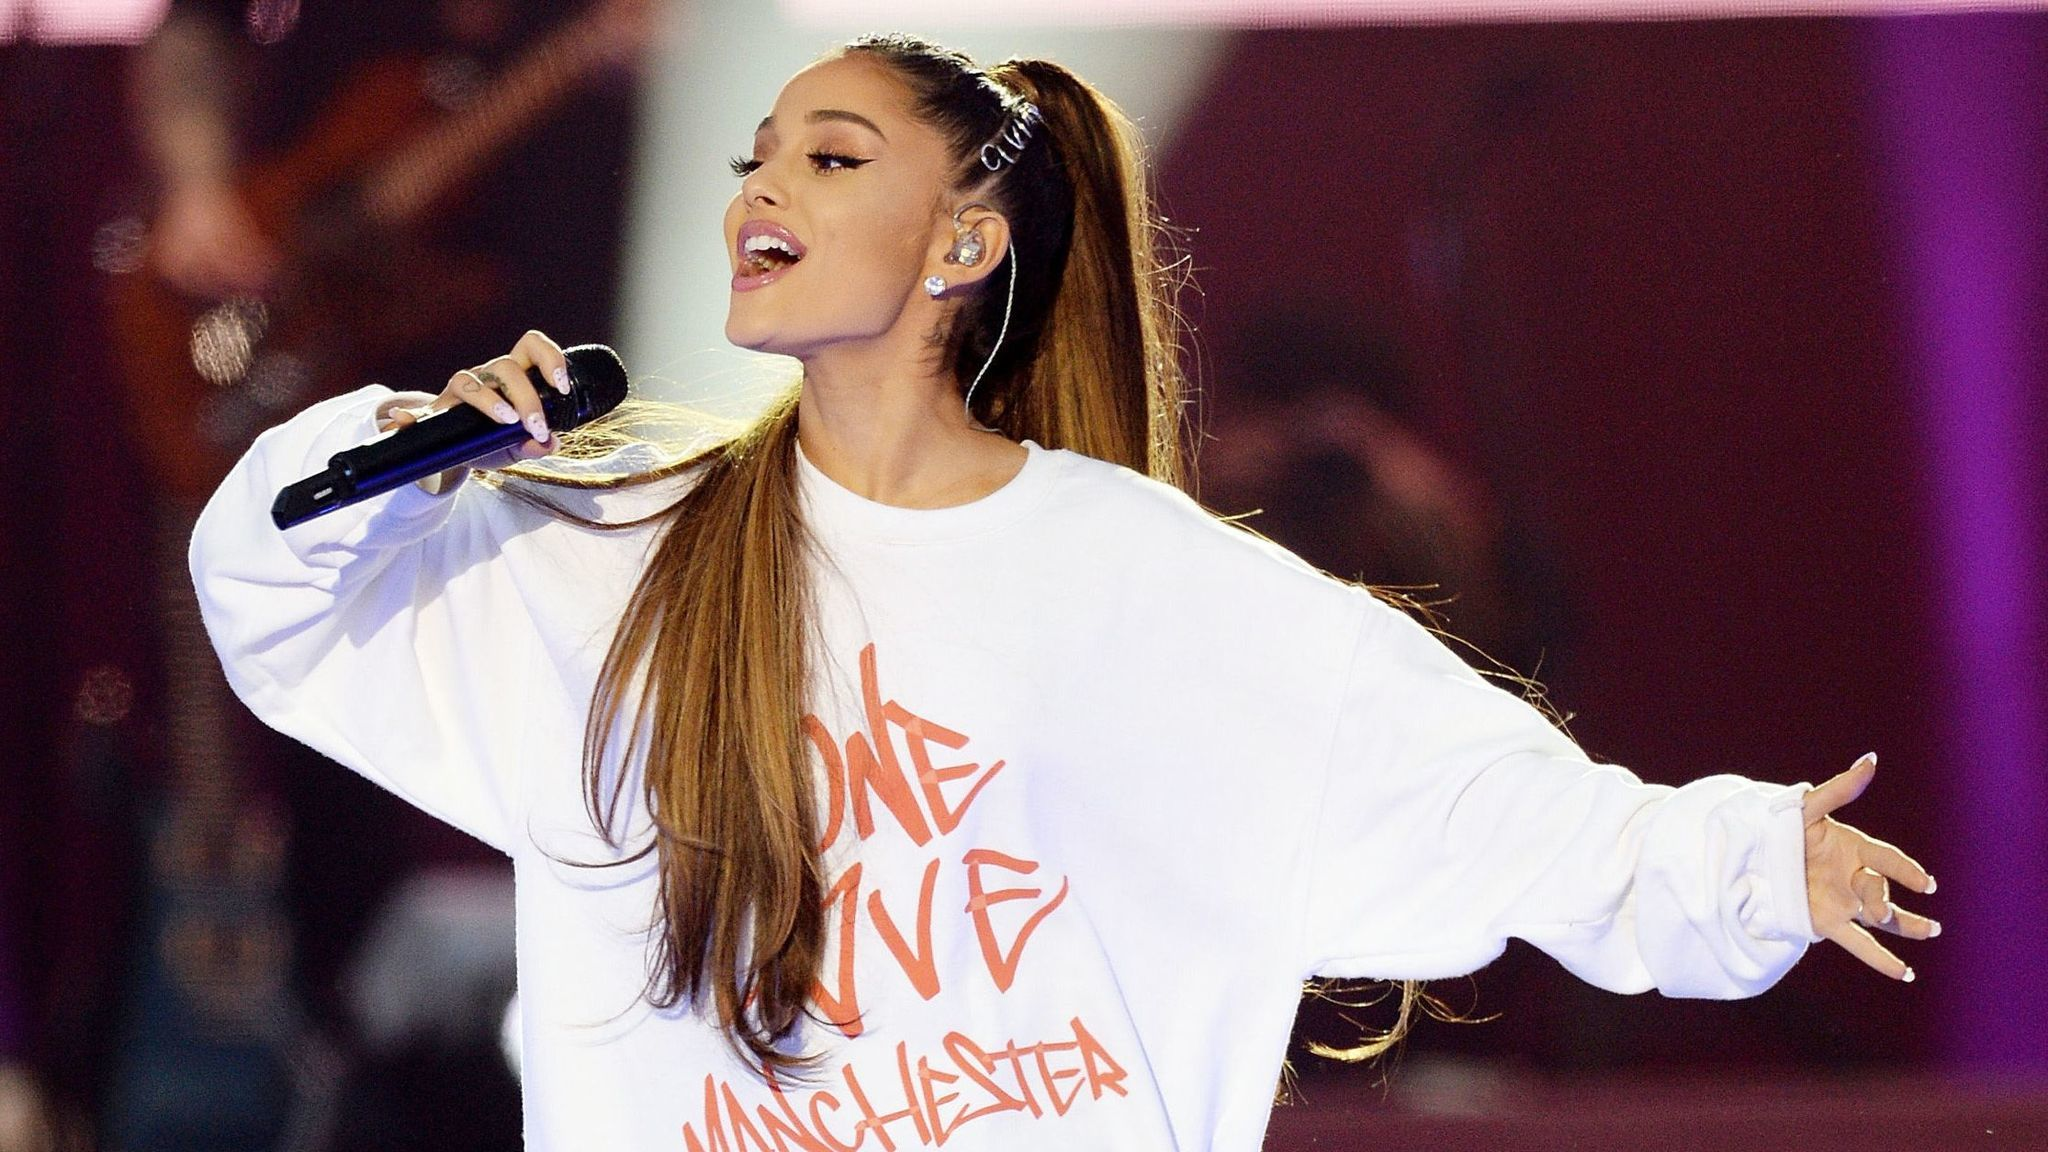 Ariana Grande performs at the One Love Manchester benefit concert in England earlier this month. (Dave Hogan / Associated Press)